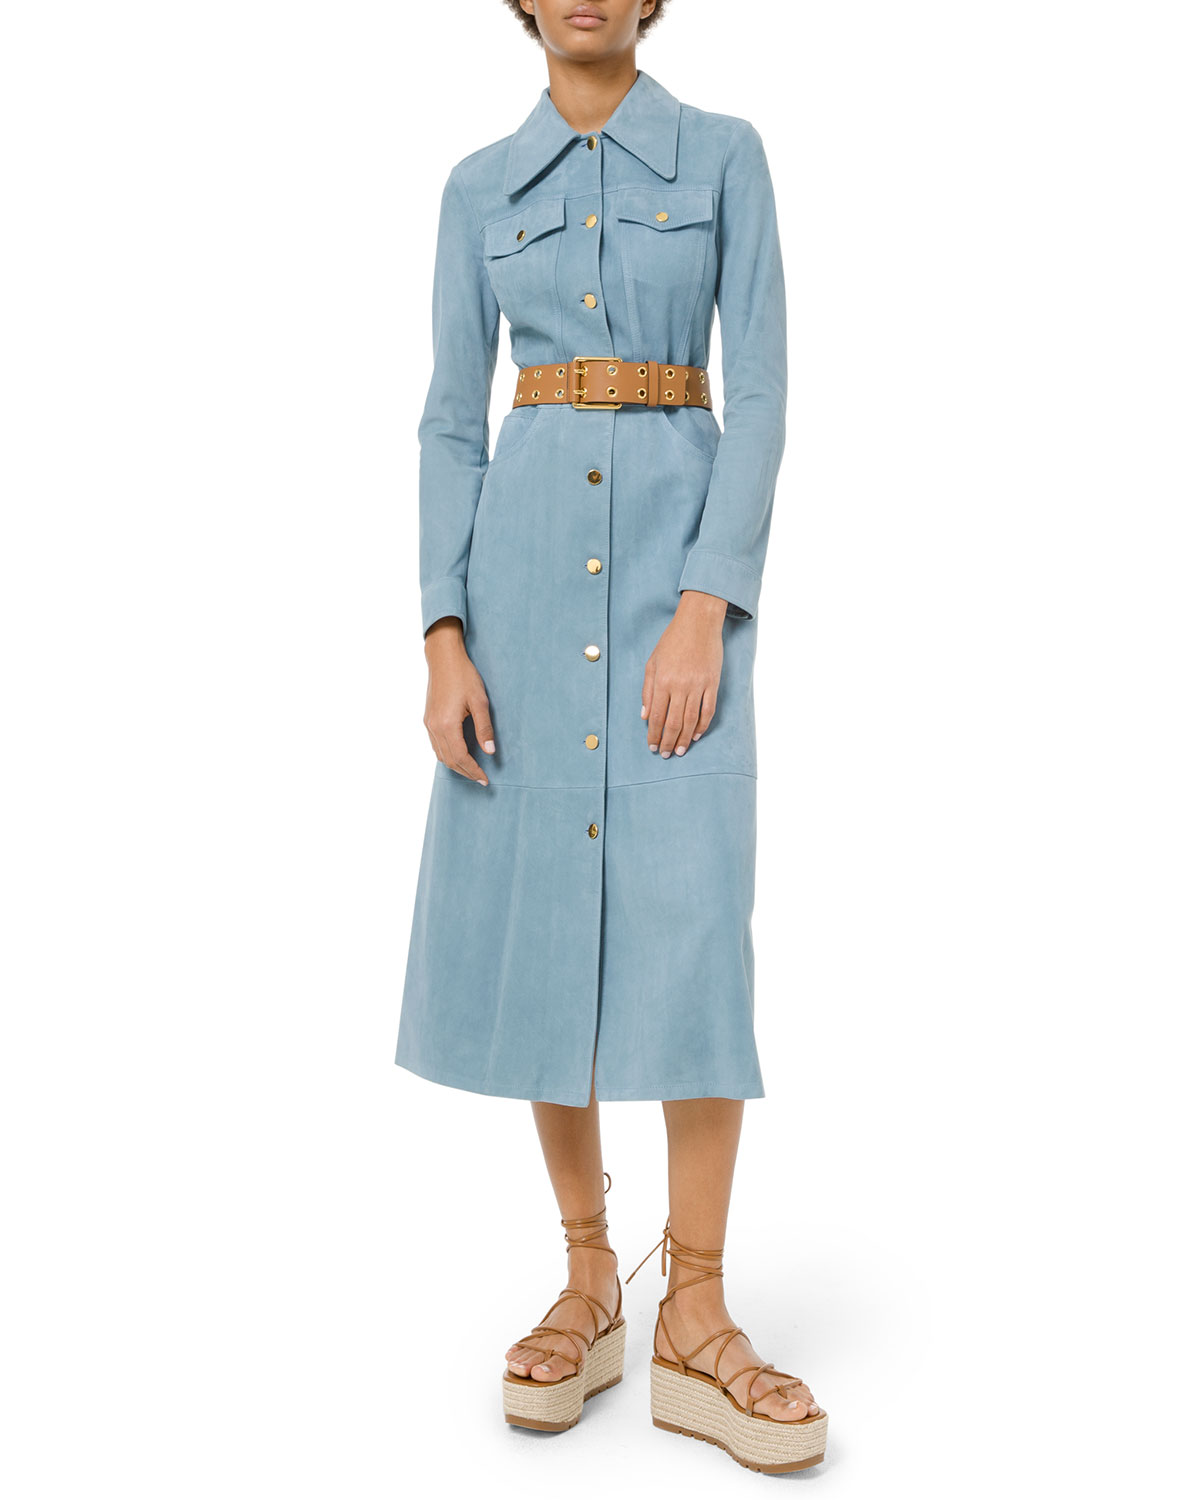 21cf5054dd9 Michael Kors Collection Heavy Suede Trench Coat Dress